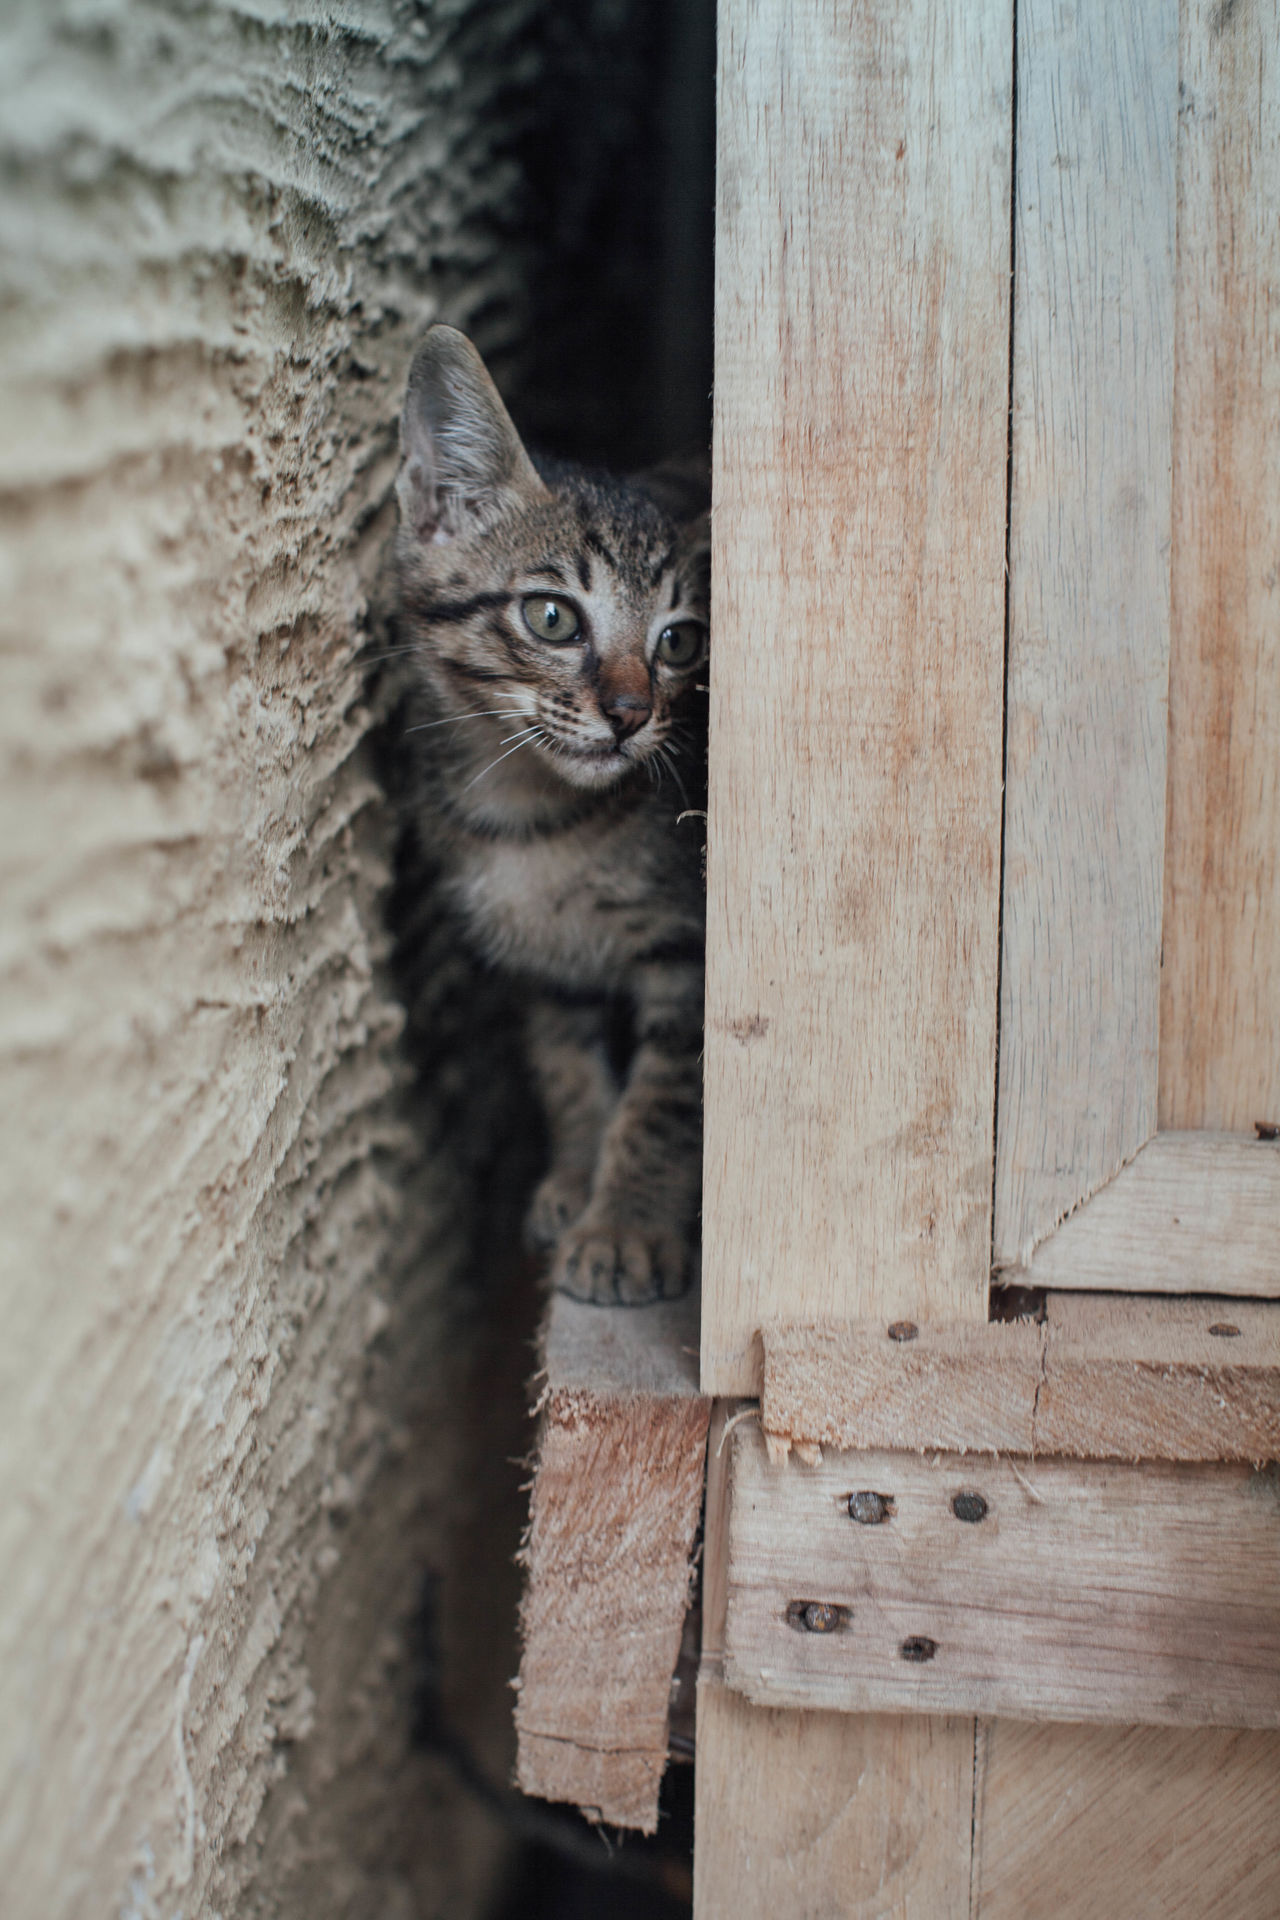 Animal Themes Close-up Day Domestic Animals Domestic Cat Feline Kitten Looking At Camera Mammal No People One Animal Outdoors Pets Portrait Wood - Material